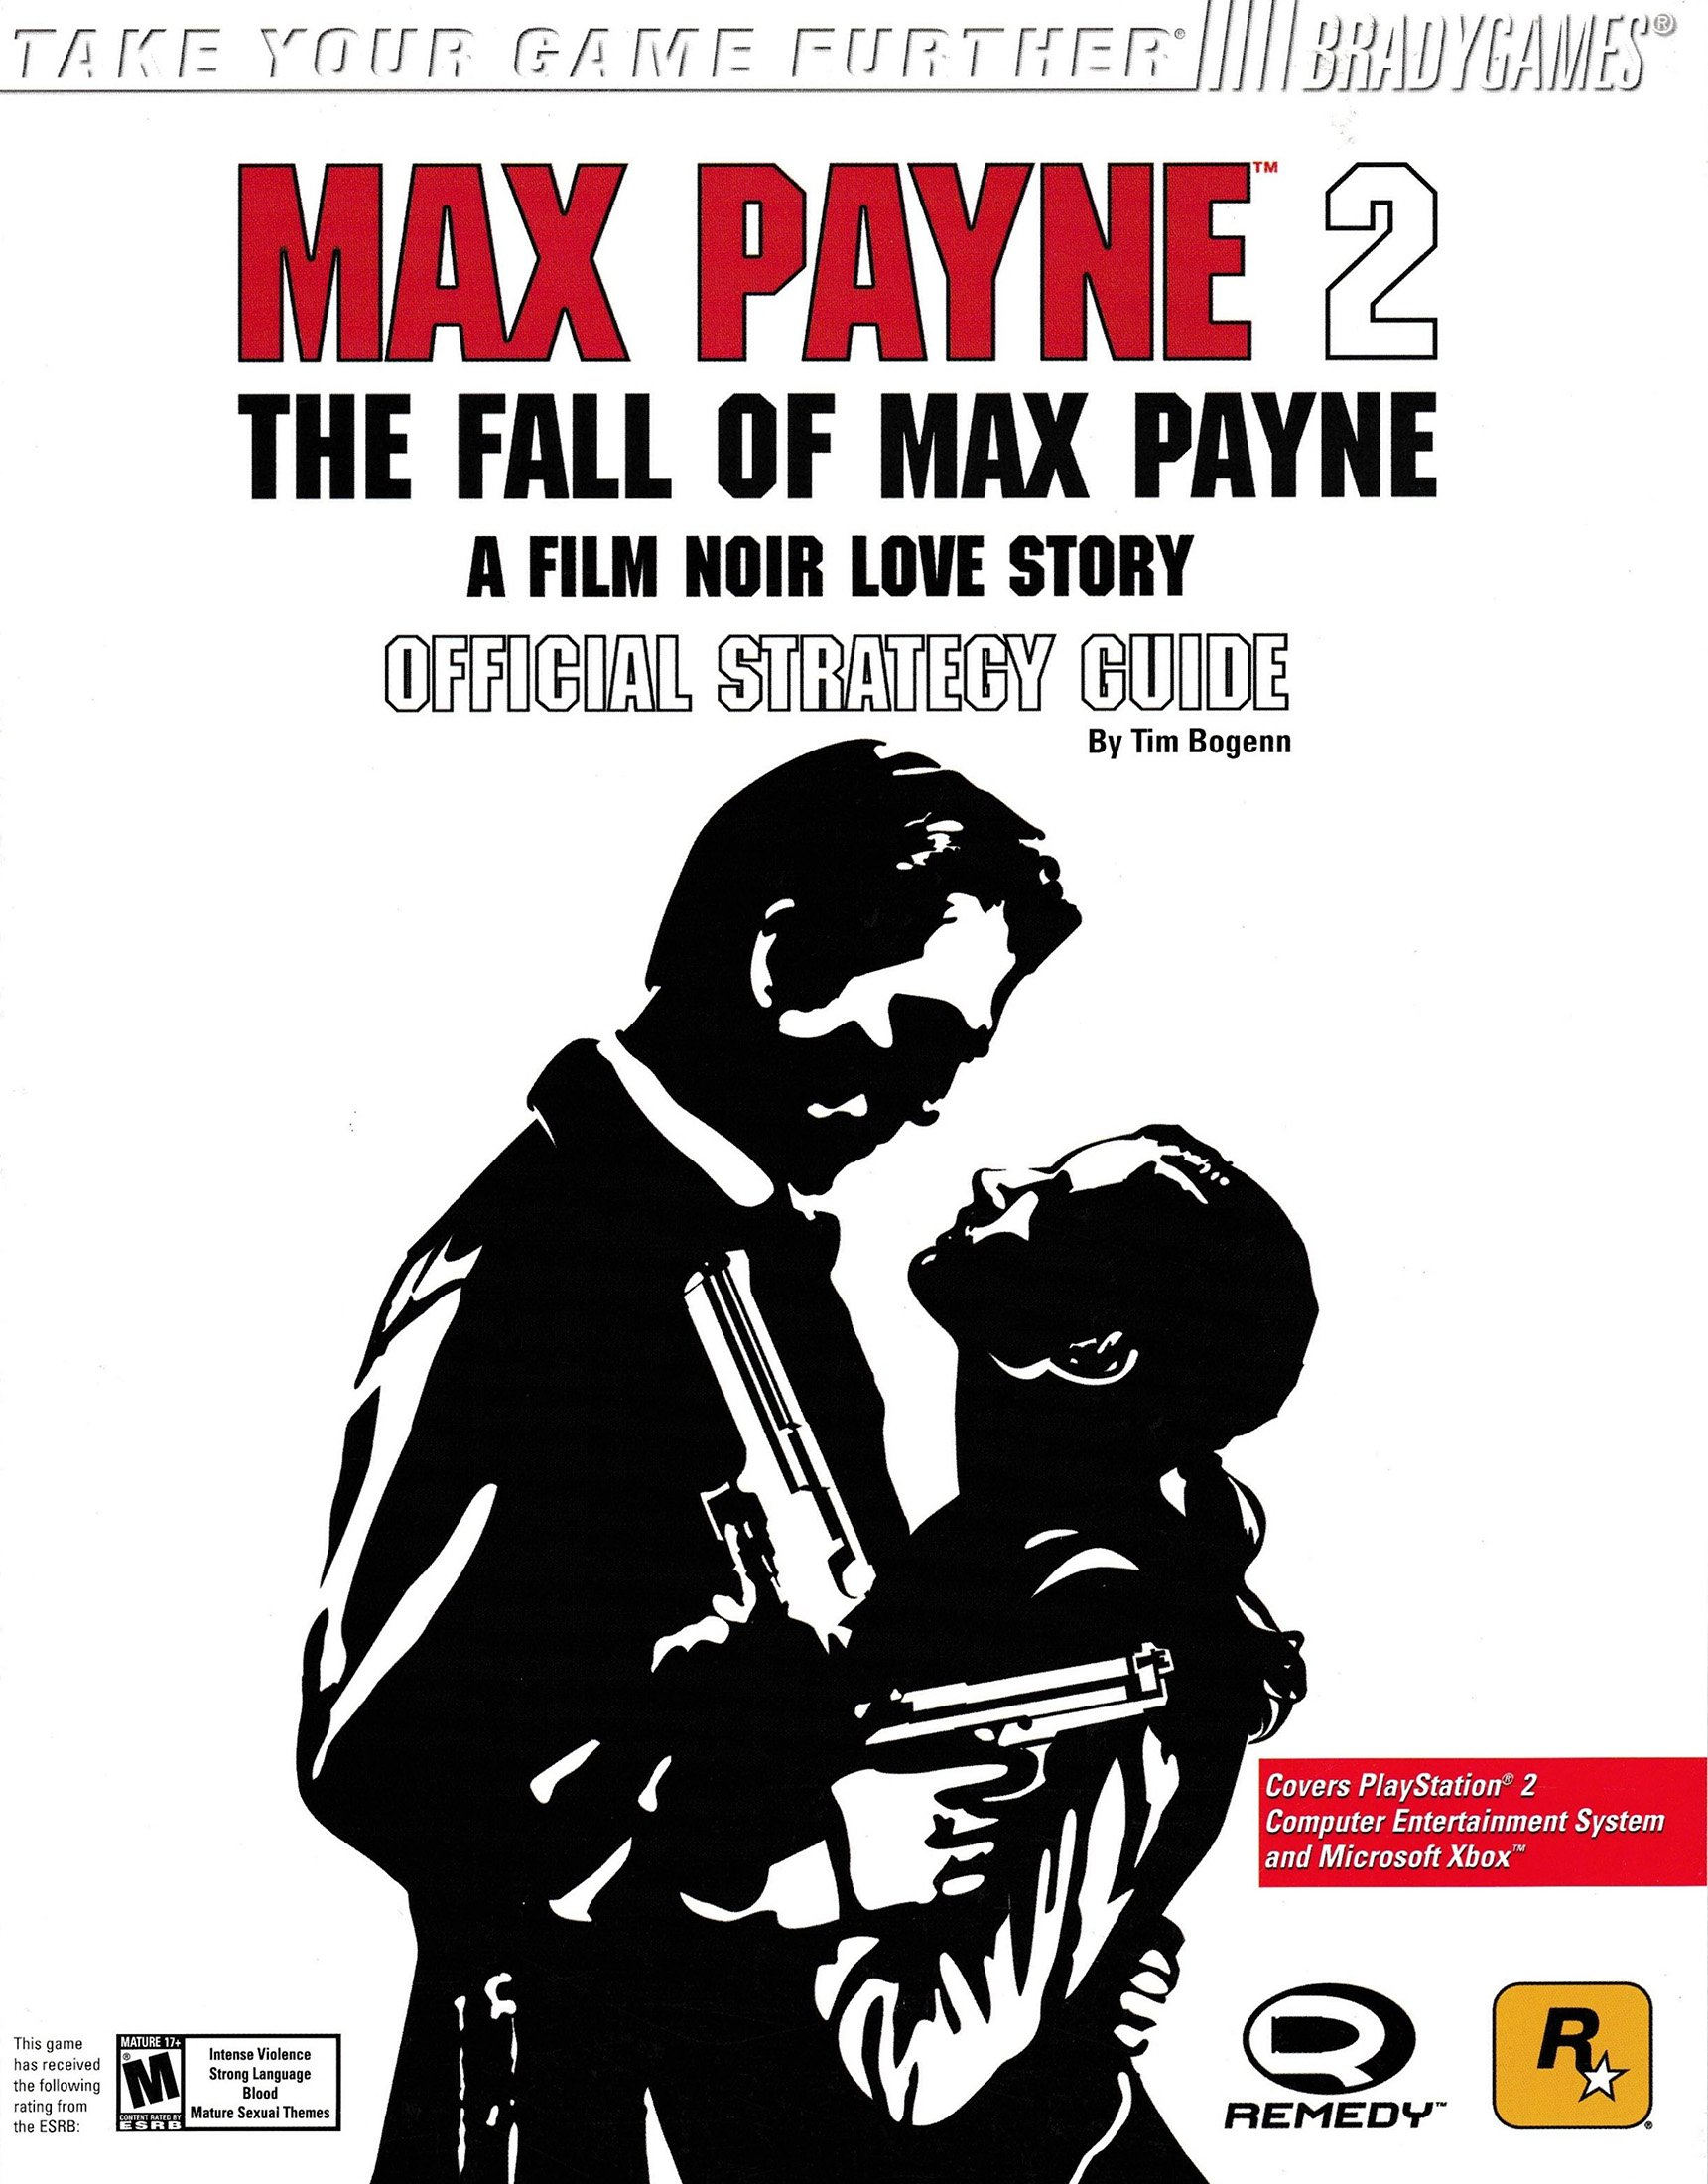 Max Payne 2 Official Strategy Guide